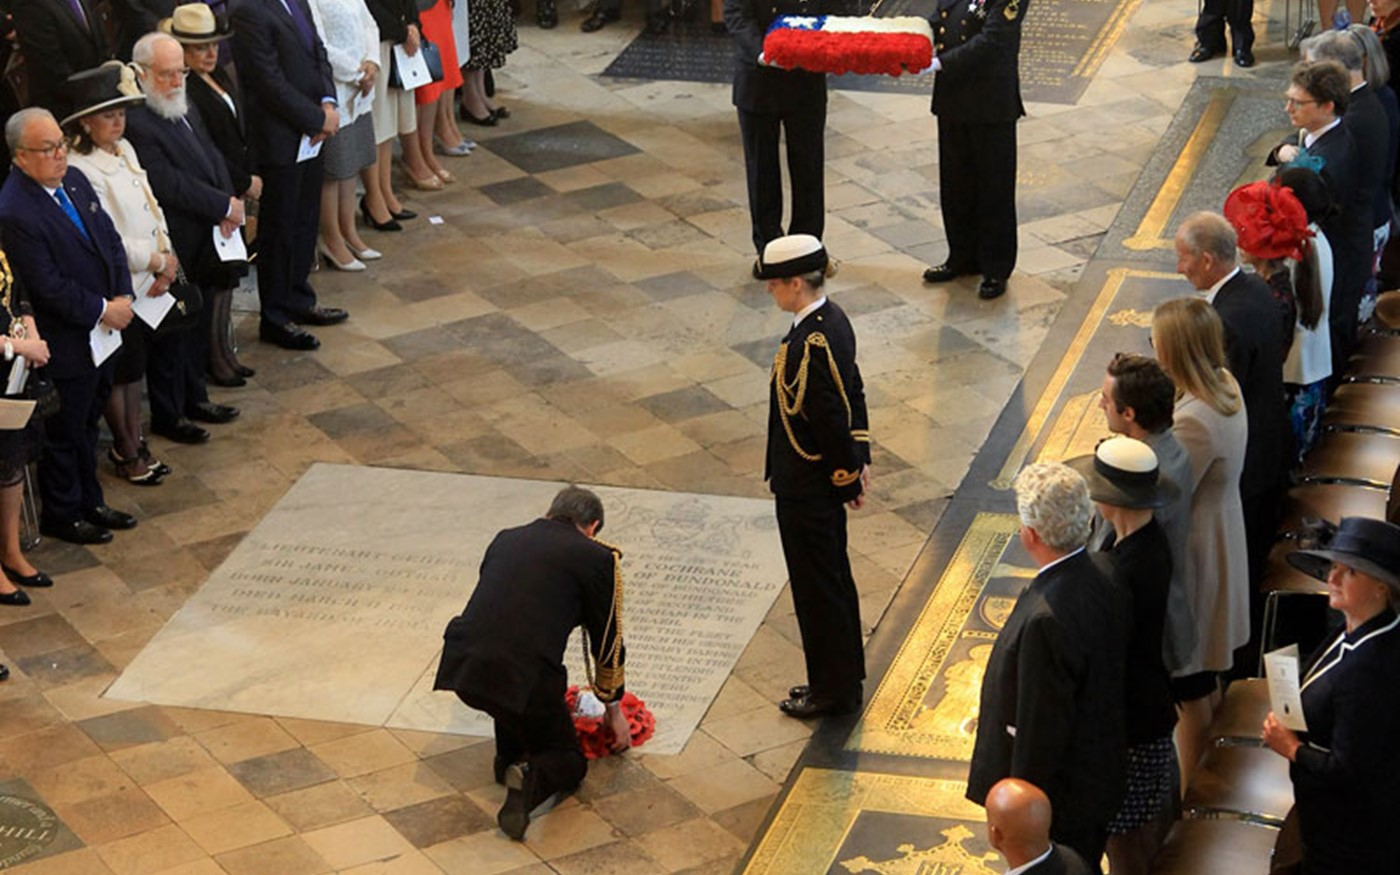 The Second Sea Lord, Vice Admiral Jonathan Woodcock OBE, lays a wreath on the grave of Admiral Thomas Cochrane, 10th Earl of Dundonald